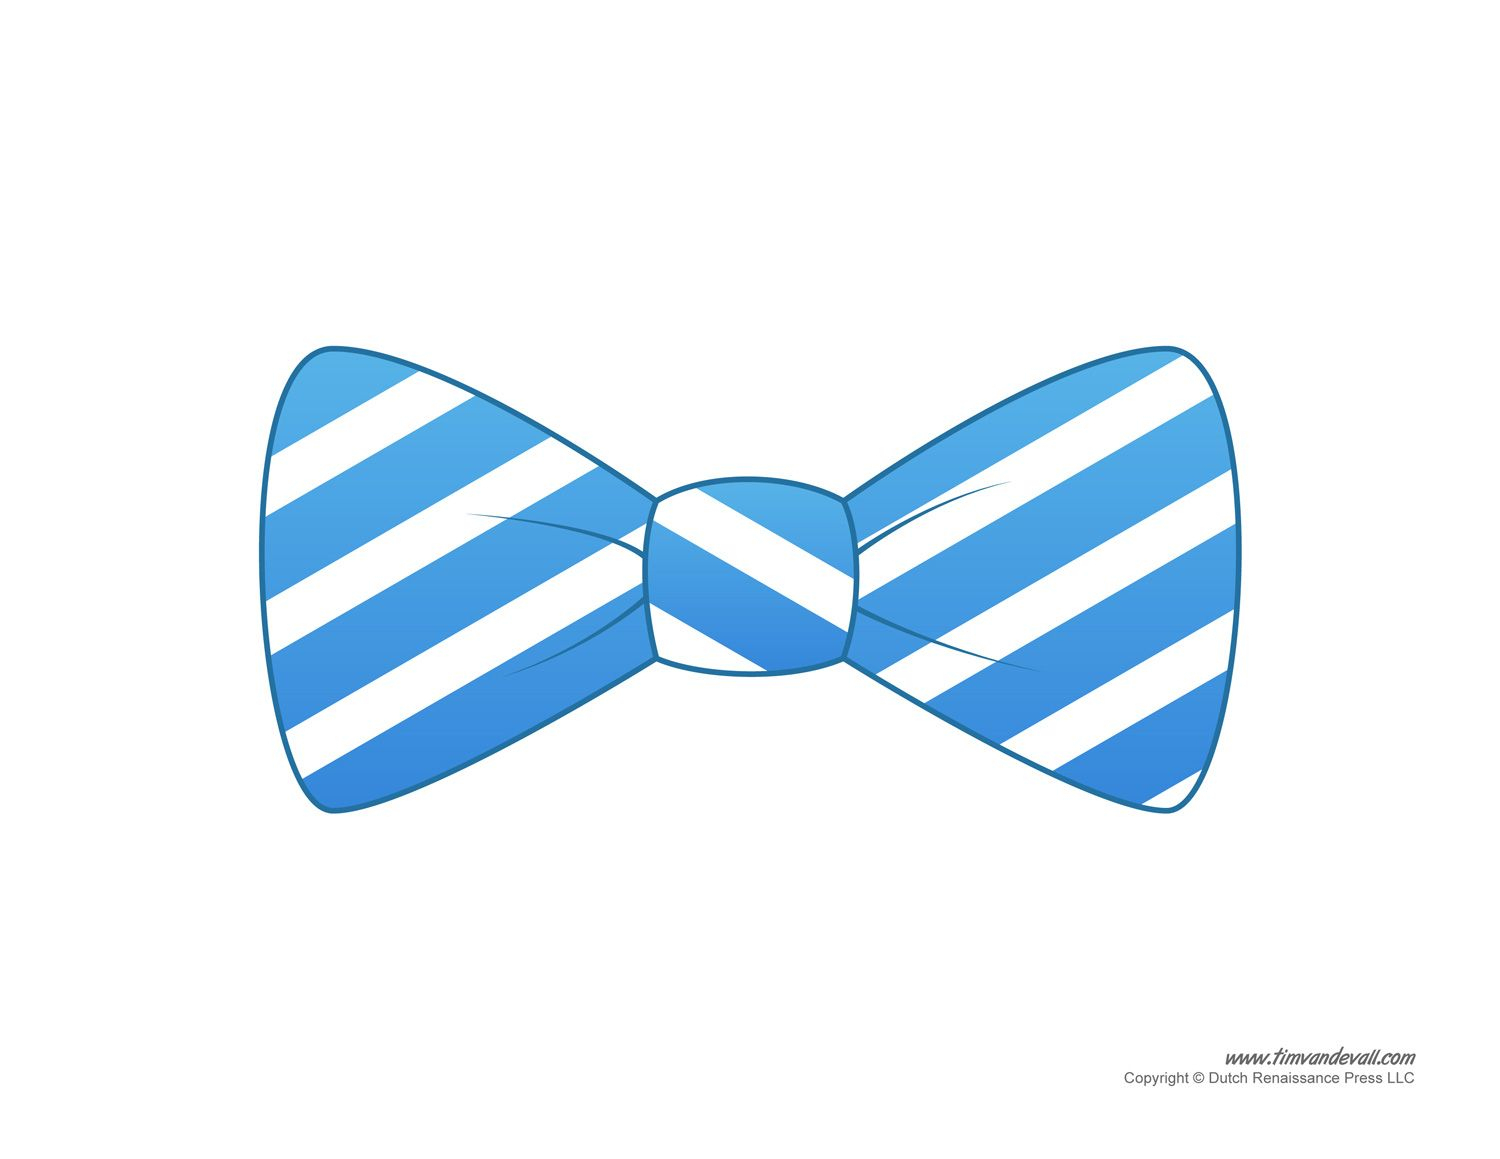 There Are 19 Bow Tie Templates To Choose From, So Chances Are We've - Free Bow Tie Template Printable